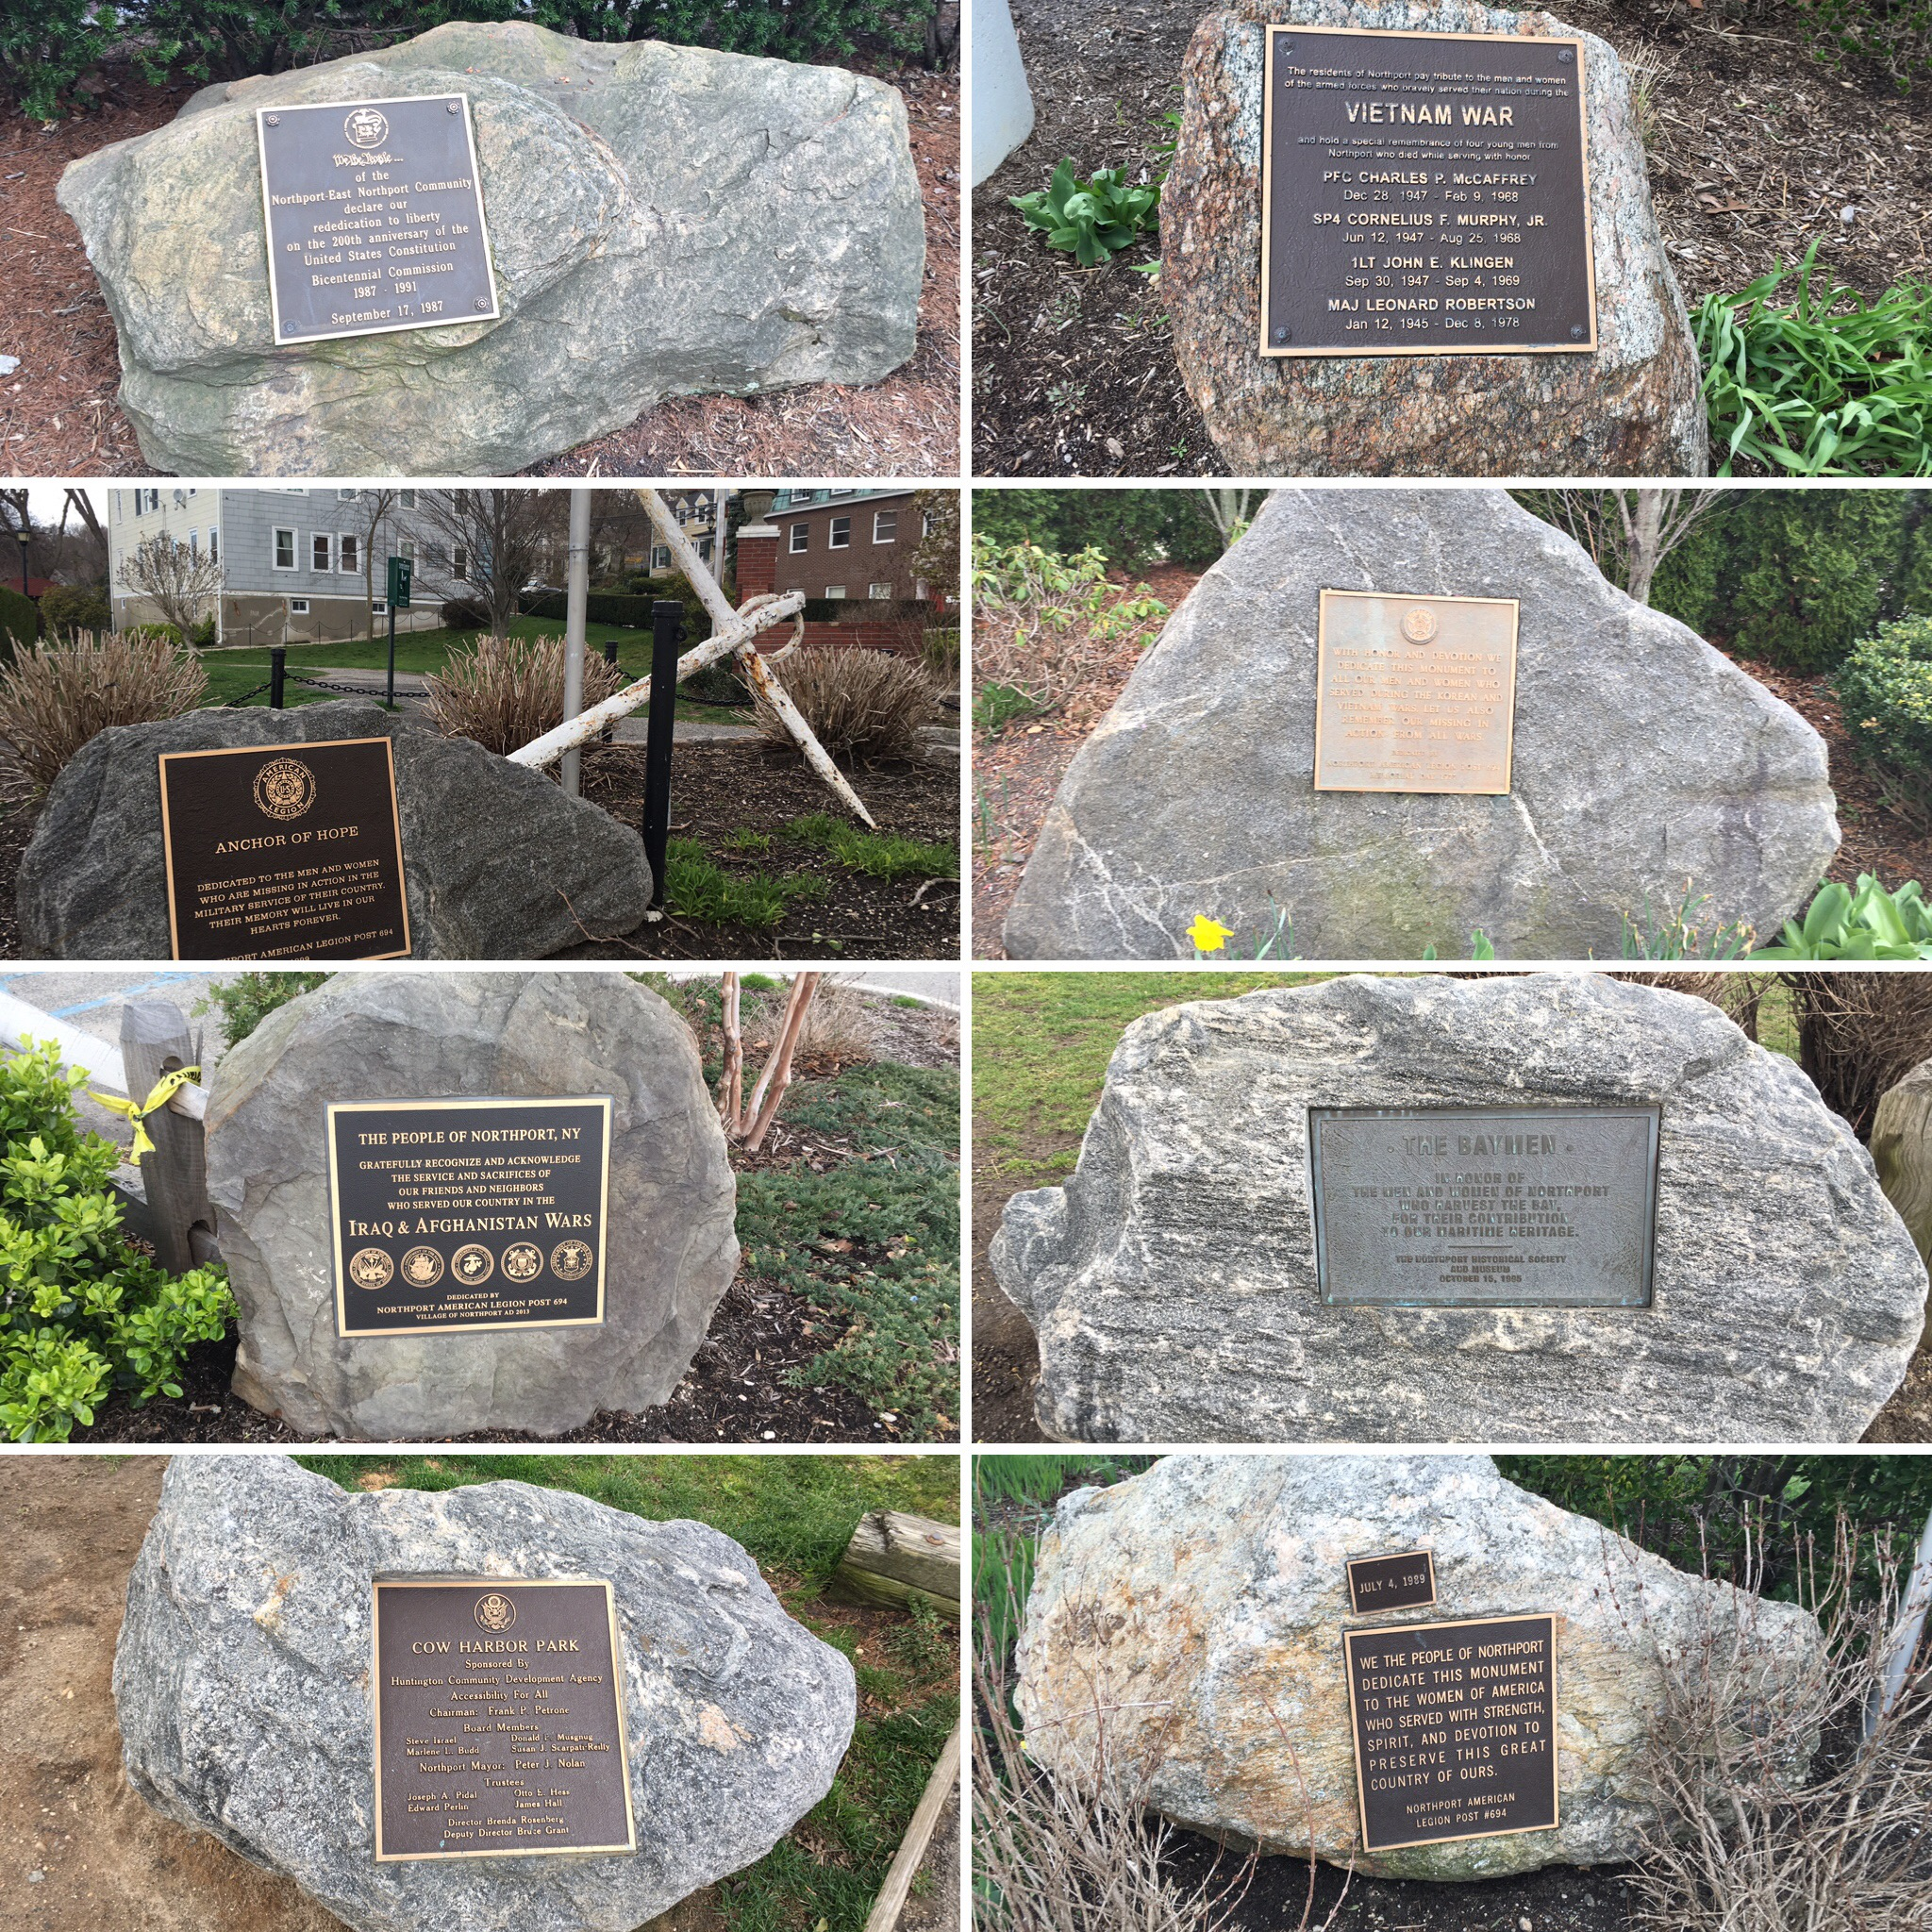 Near the waerfront in Northport village is perhaps the greatest concentration of memorial boulders in Town.